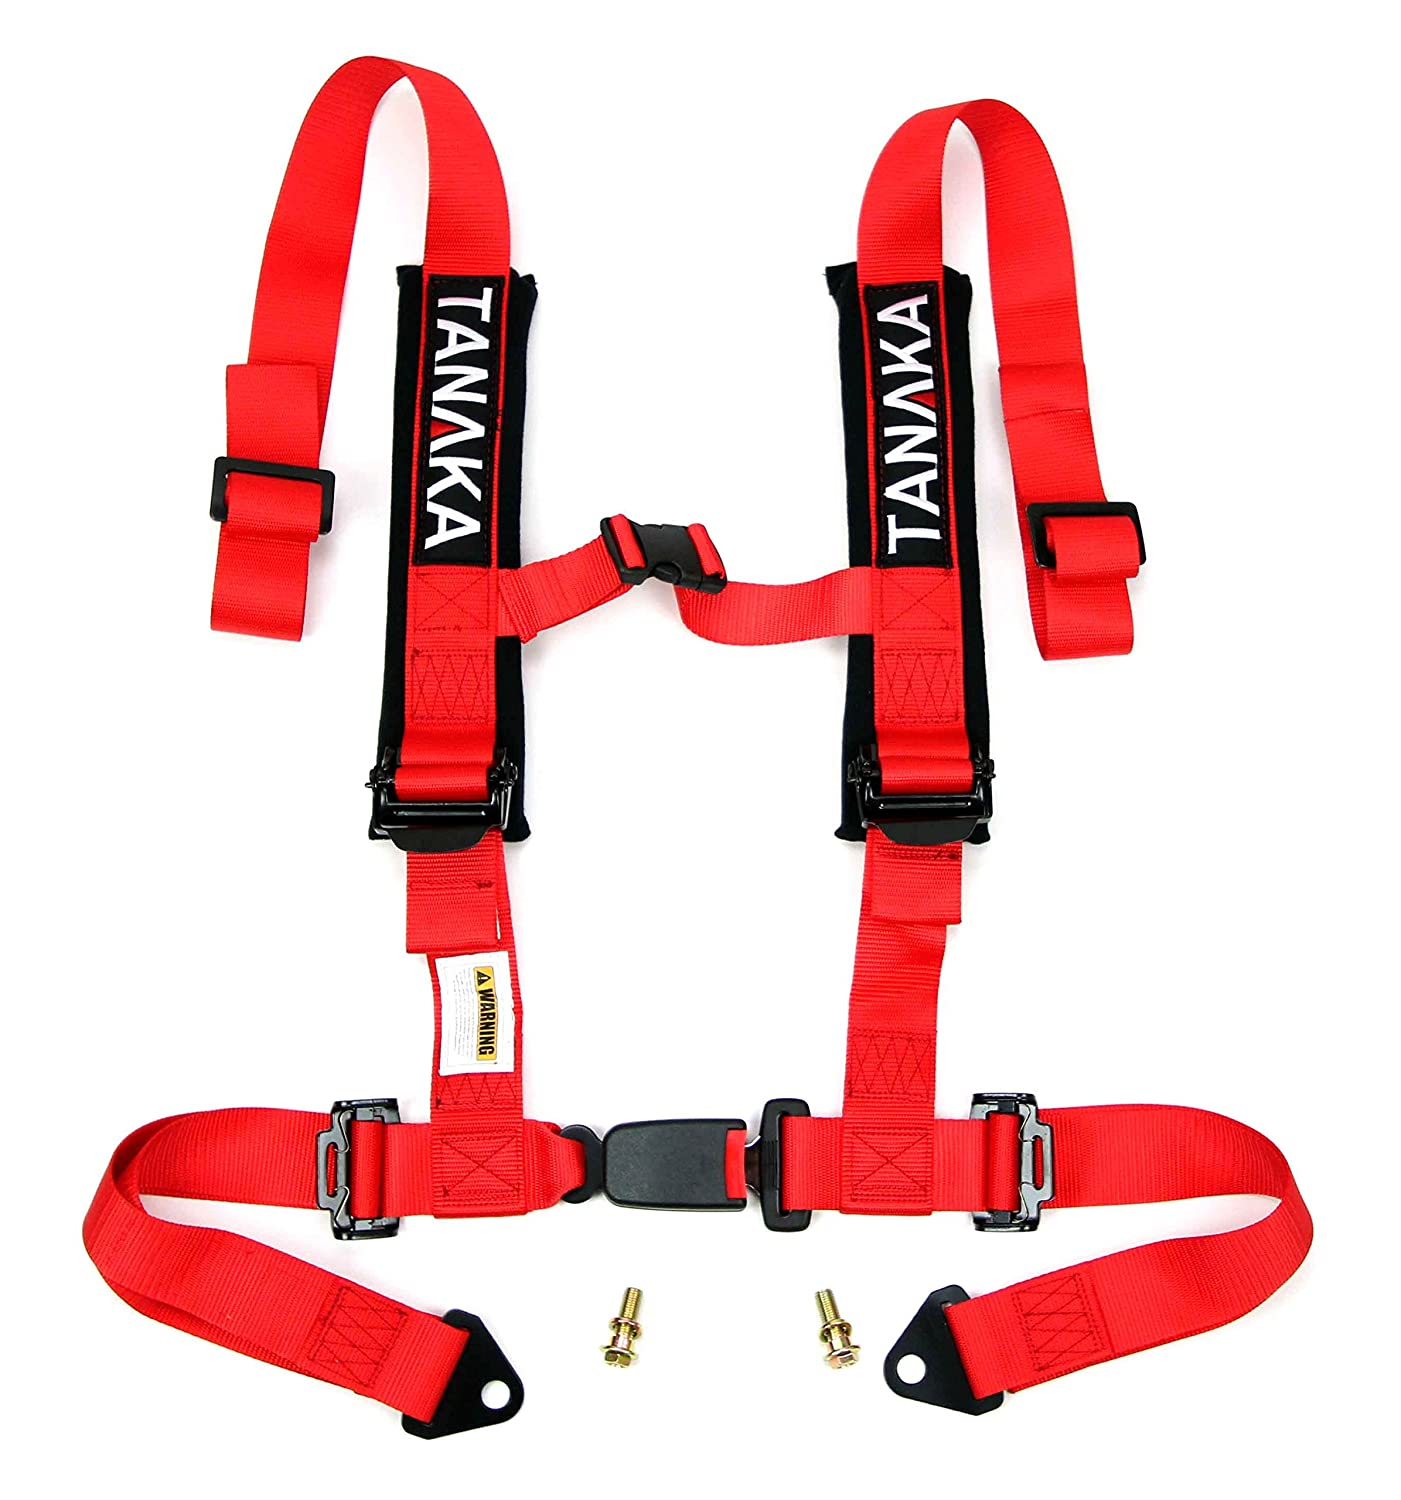 Tanaka Phantom Series Buckle 4 Point Safety Harness Set with Ultra Comfort Heavy Duty Shoulder Pads (Onyx)